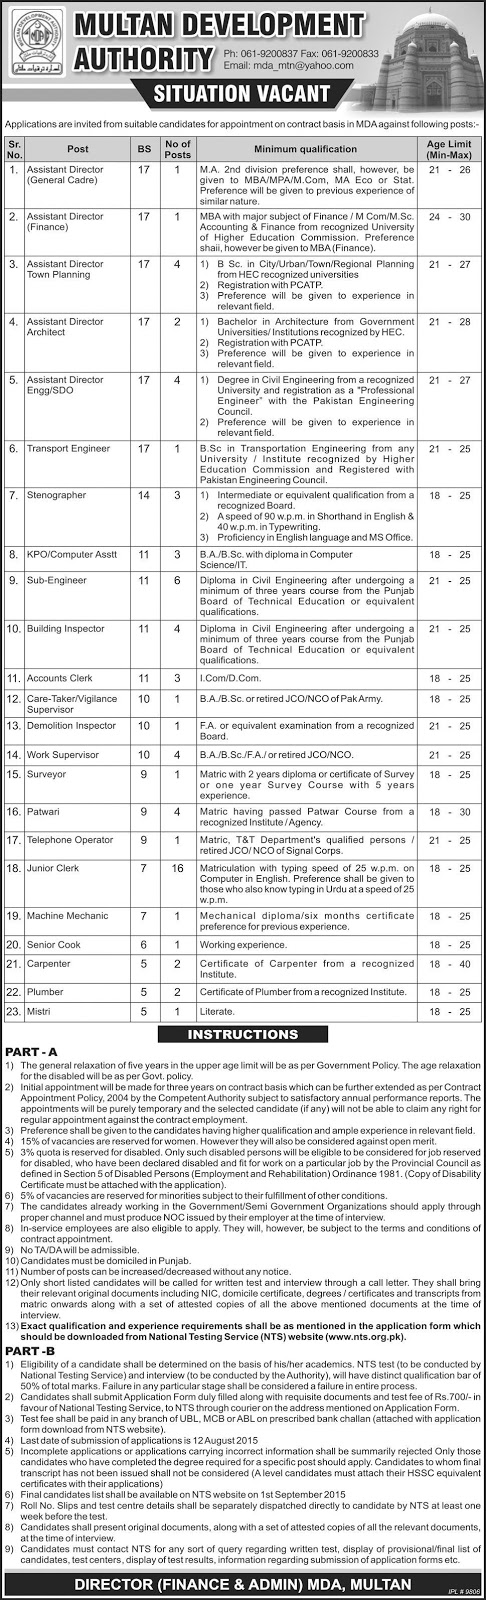 New Jobs in MDA, Multan Development Authority Jobs